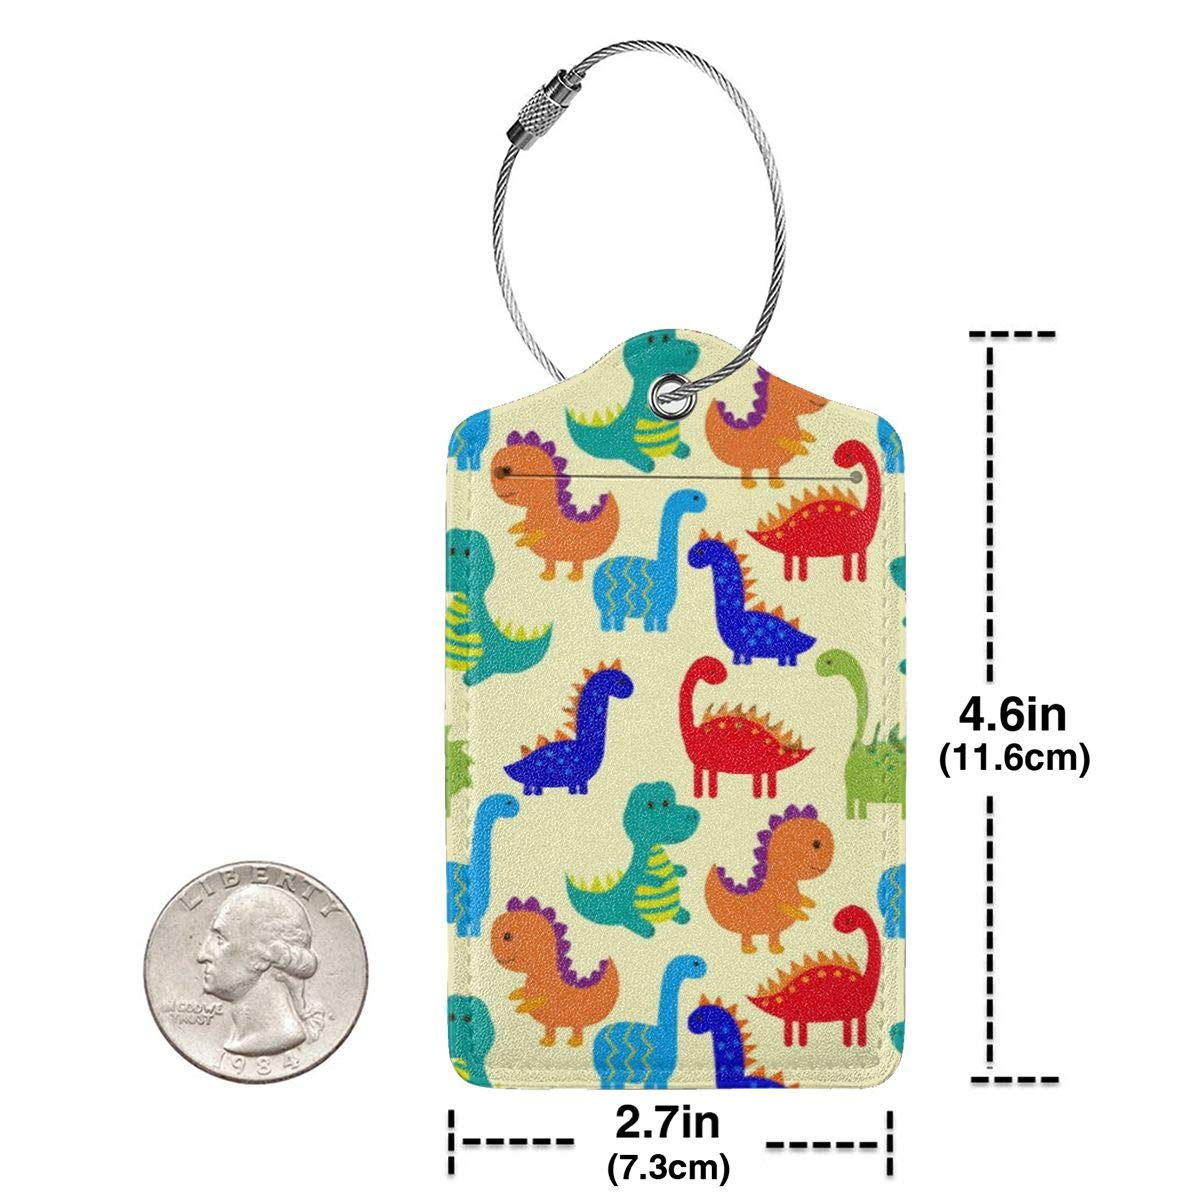 Cute Colorful Dinosaurs Luggage Tag Label Travel Bag Label With Privacy Cover Luggage Tag Leather Personalized Suitcase Tag Travel Accessories